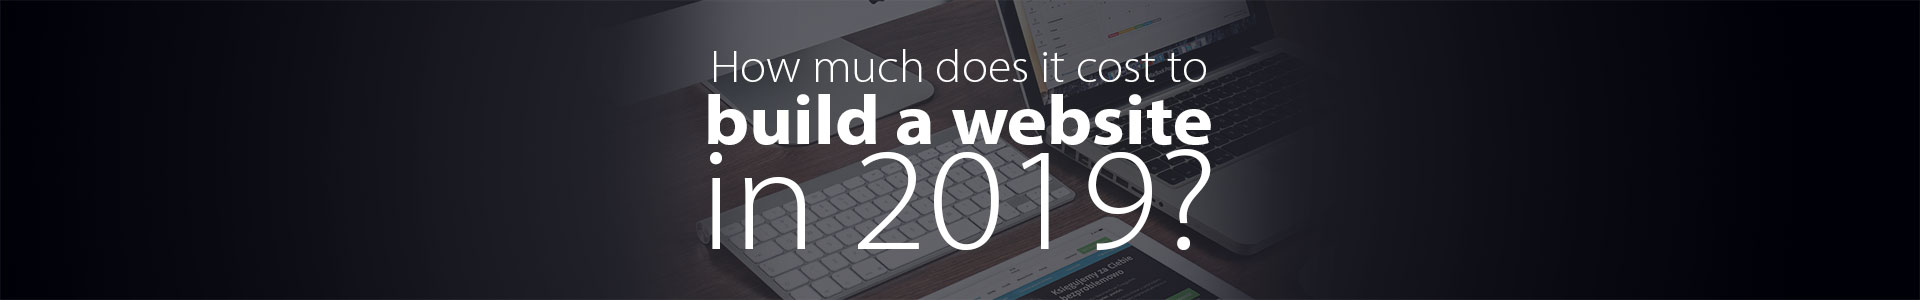 How much does it cost to build a website in 2019?